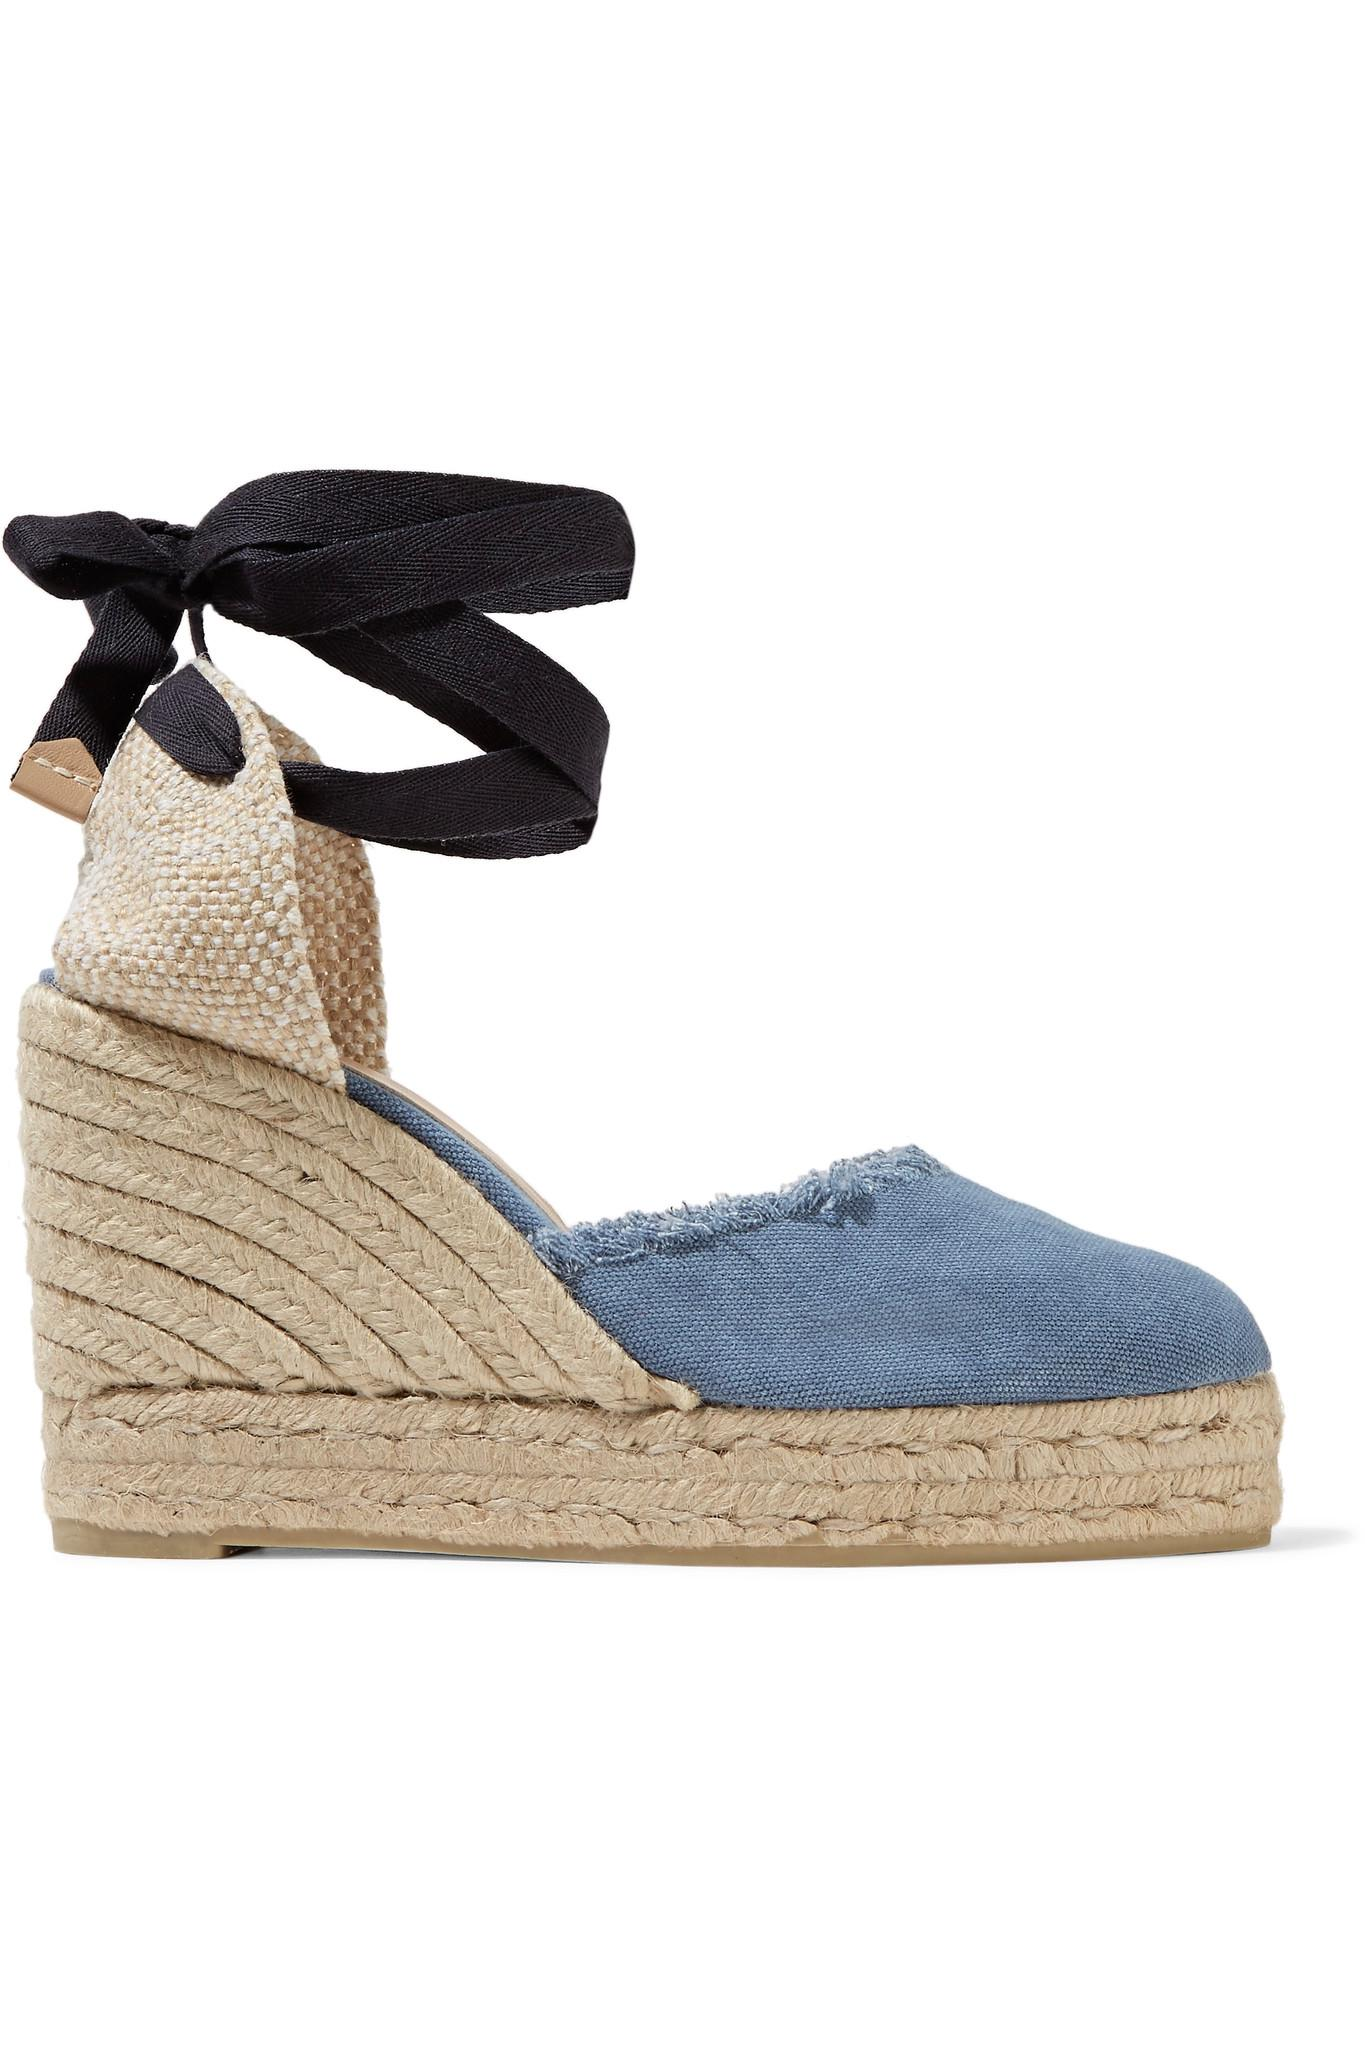 7812bac40dd Lyst - Castaner Canela Fringed Denim Wedge Espadrilles in Blue